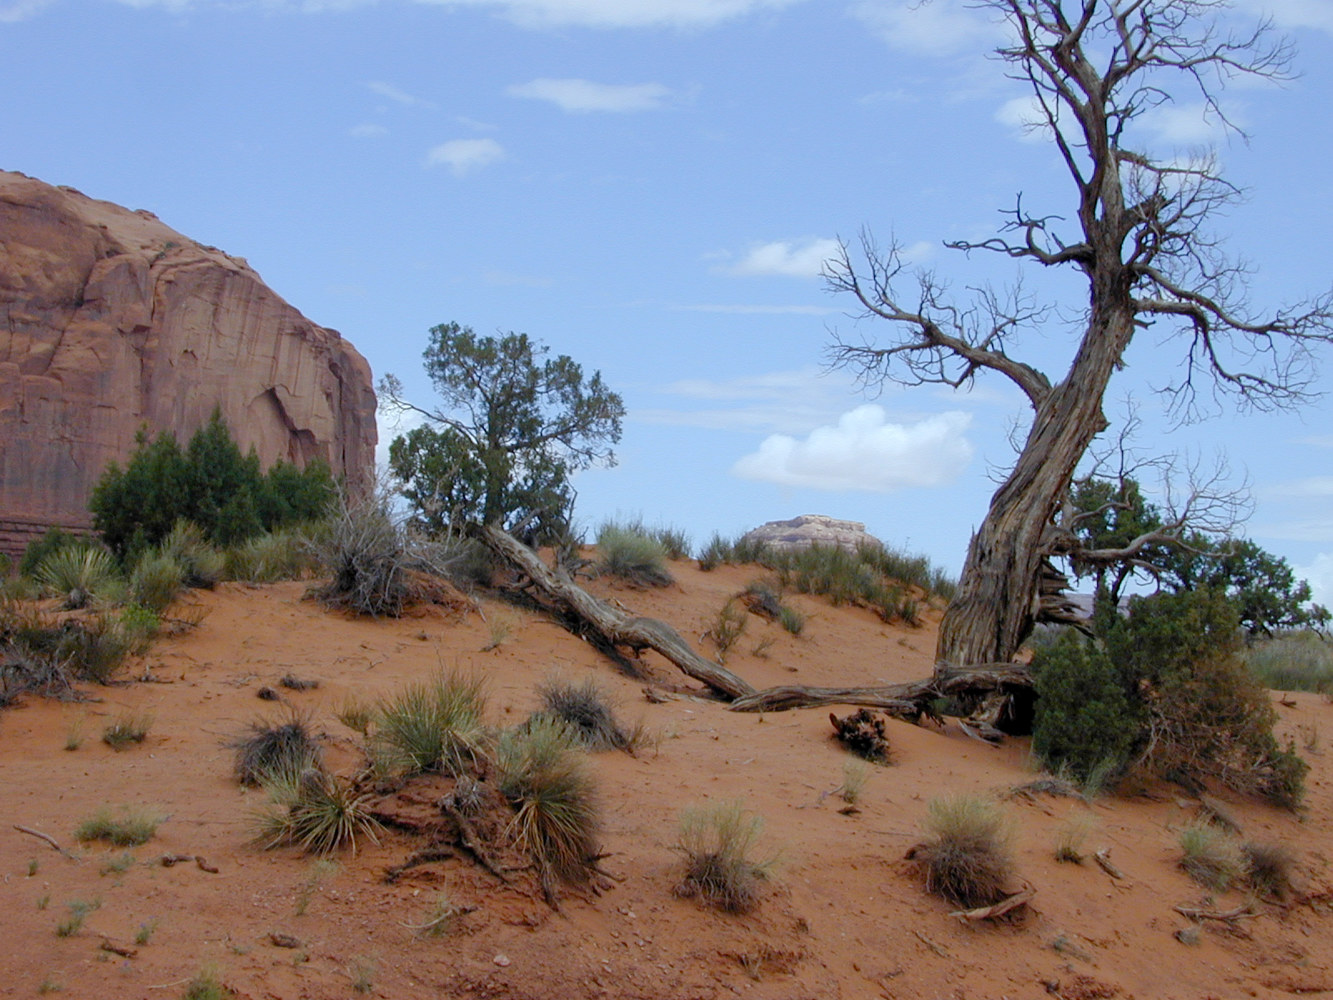 Tree at Arches by Kathleen Gross